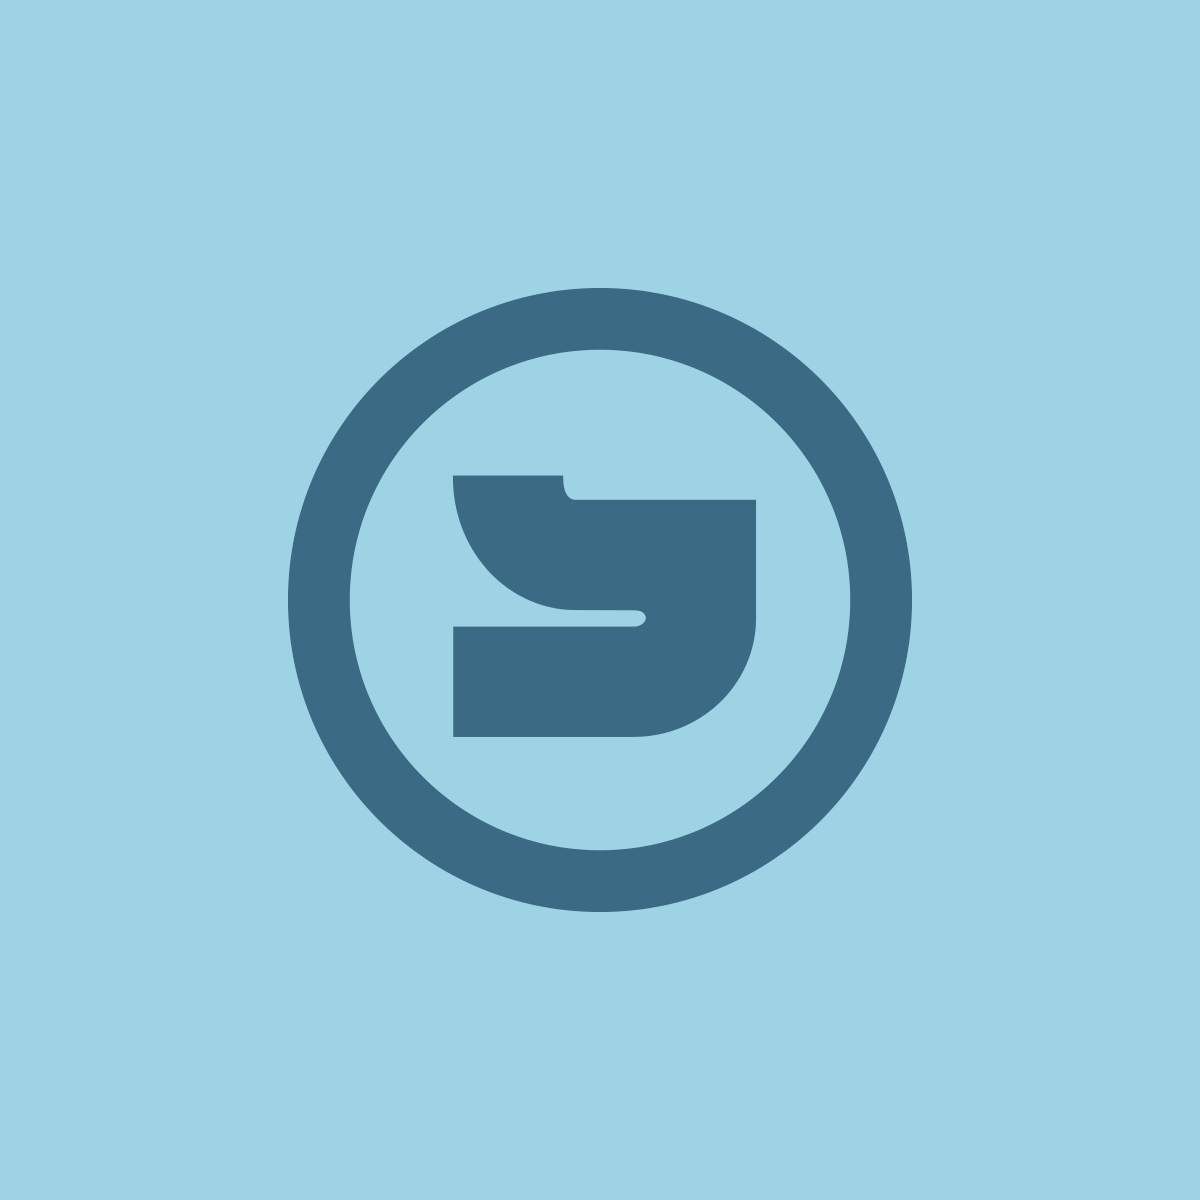 HIIT 45/15 - Interval Training